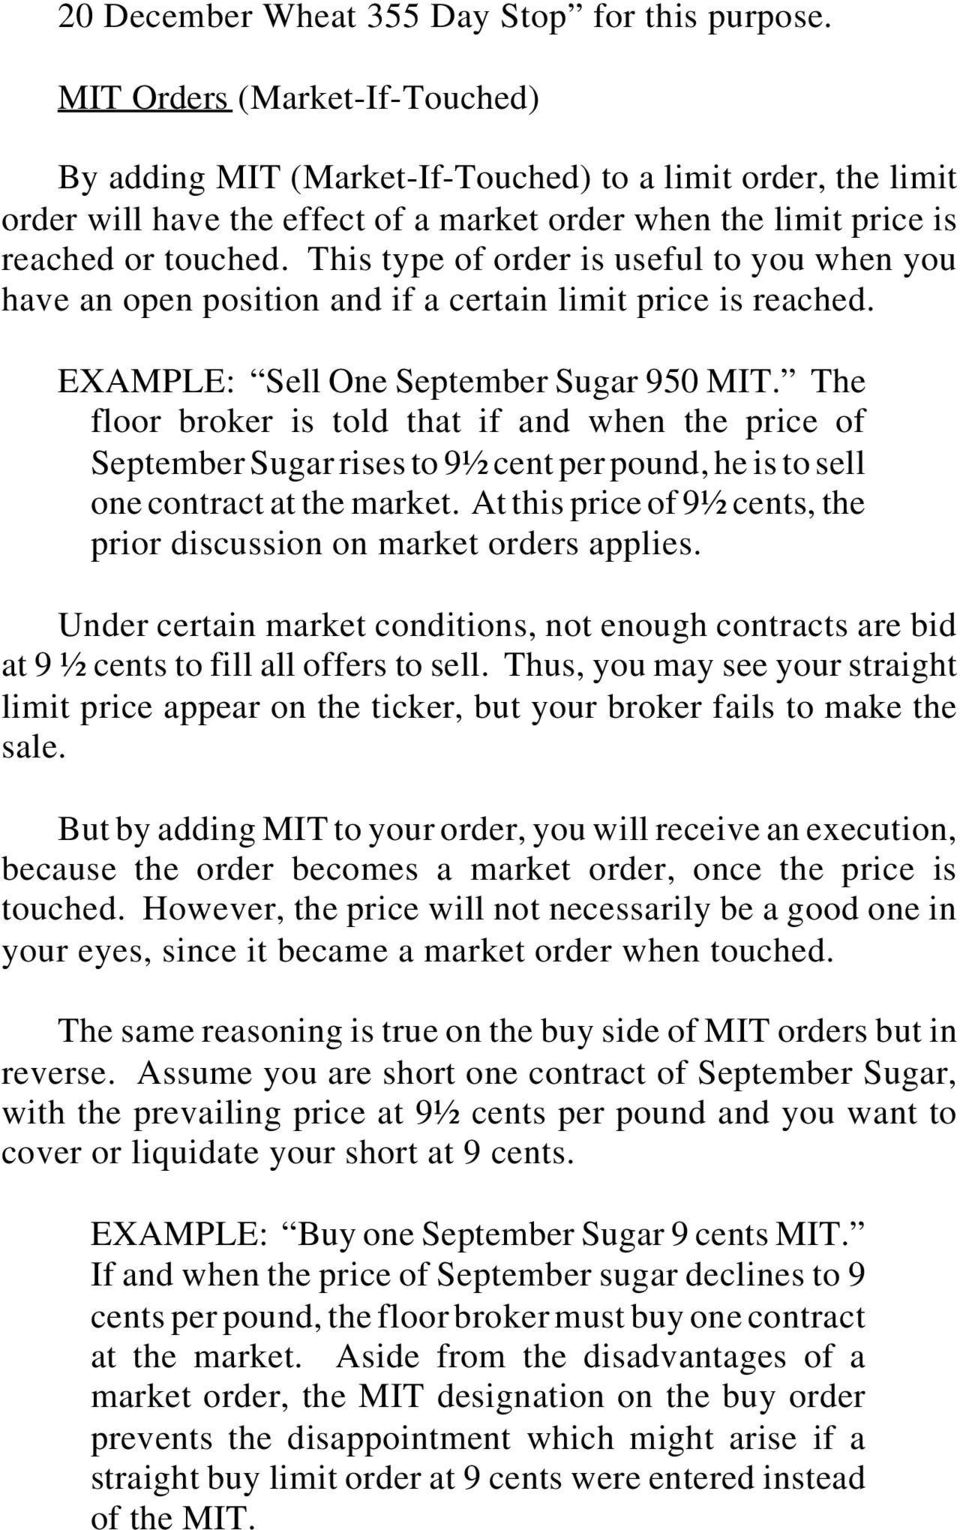 This type of order is useful to you when you have an open position and if a certain limit price is reached. EXAMPLE: Sell One September Sugar 950 MIT.